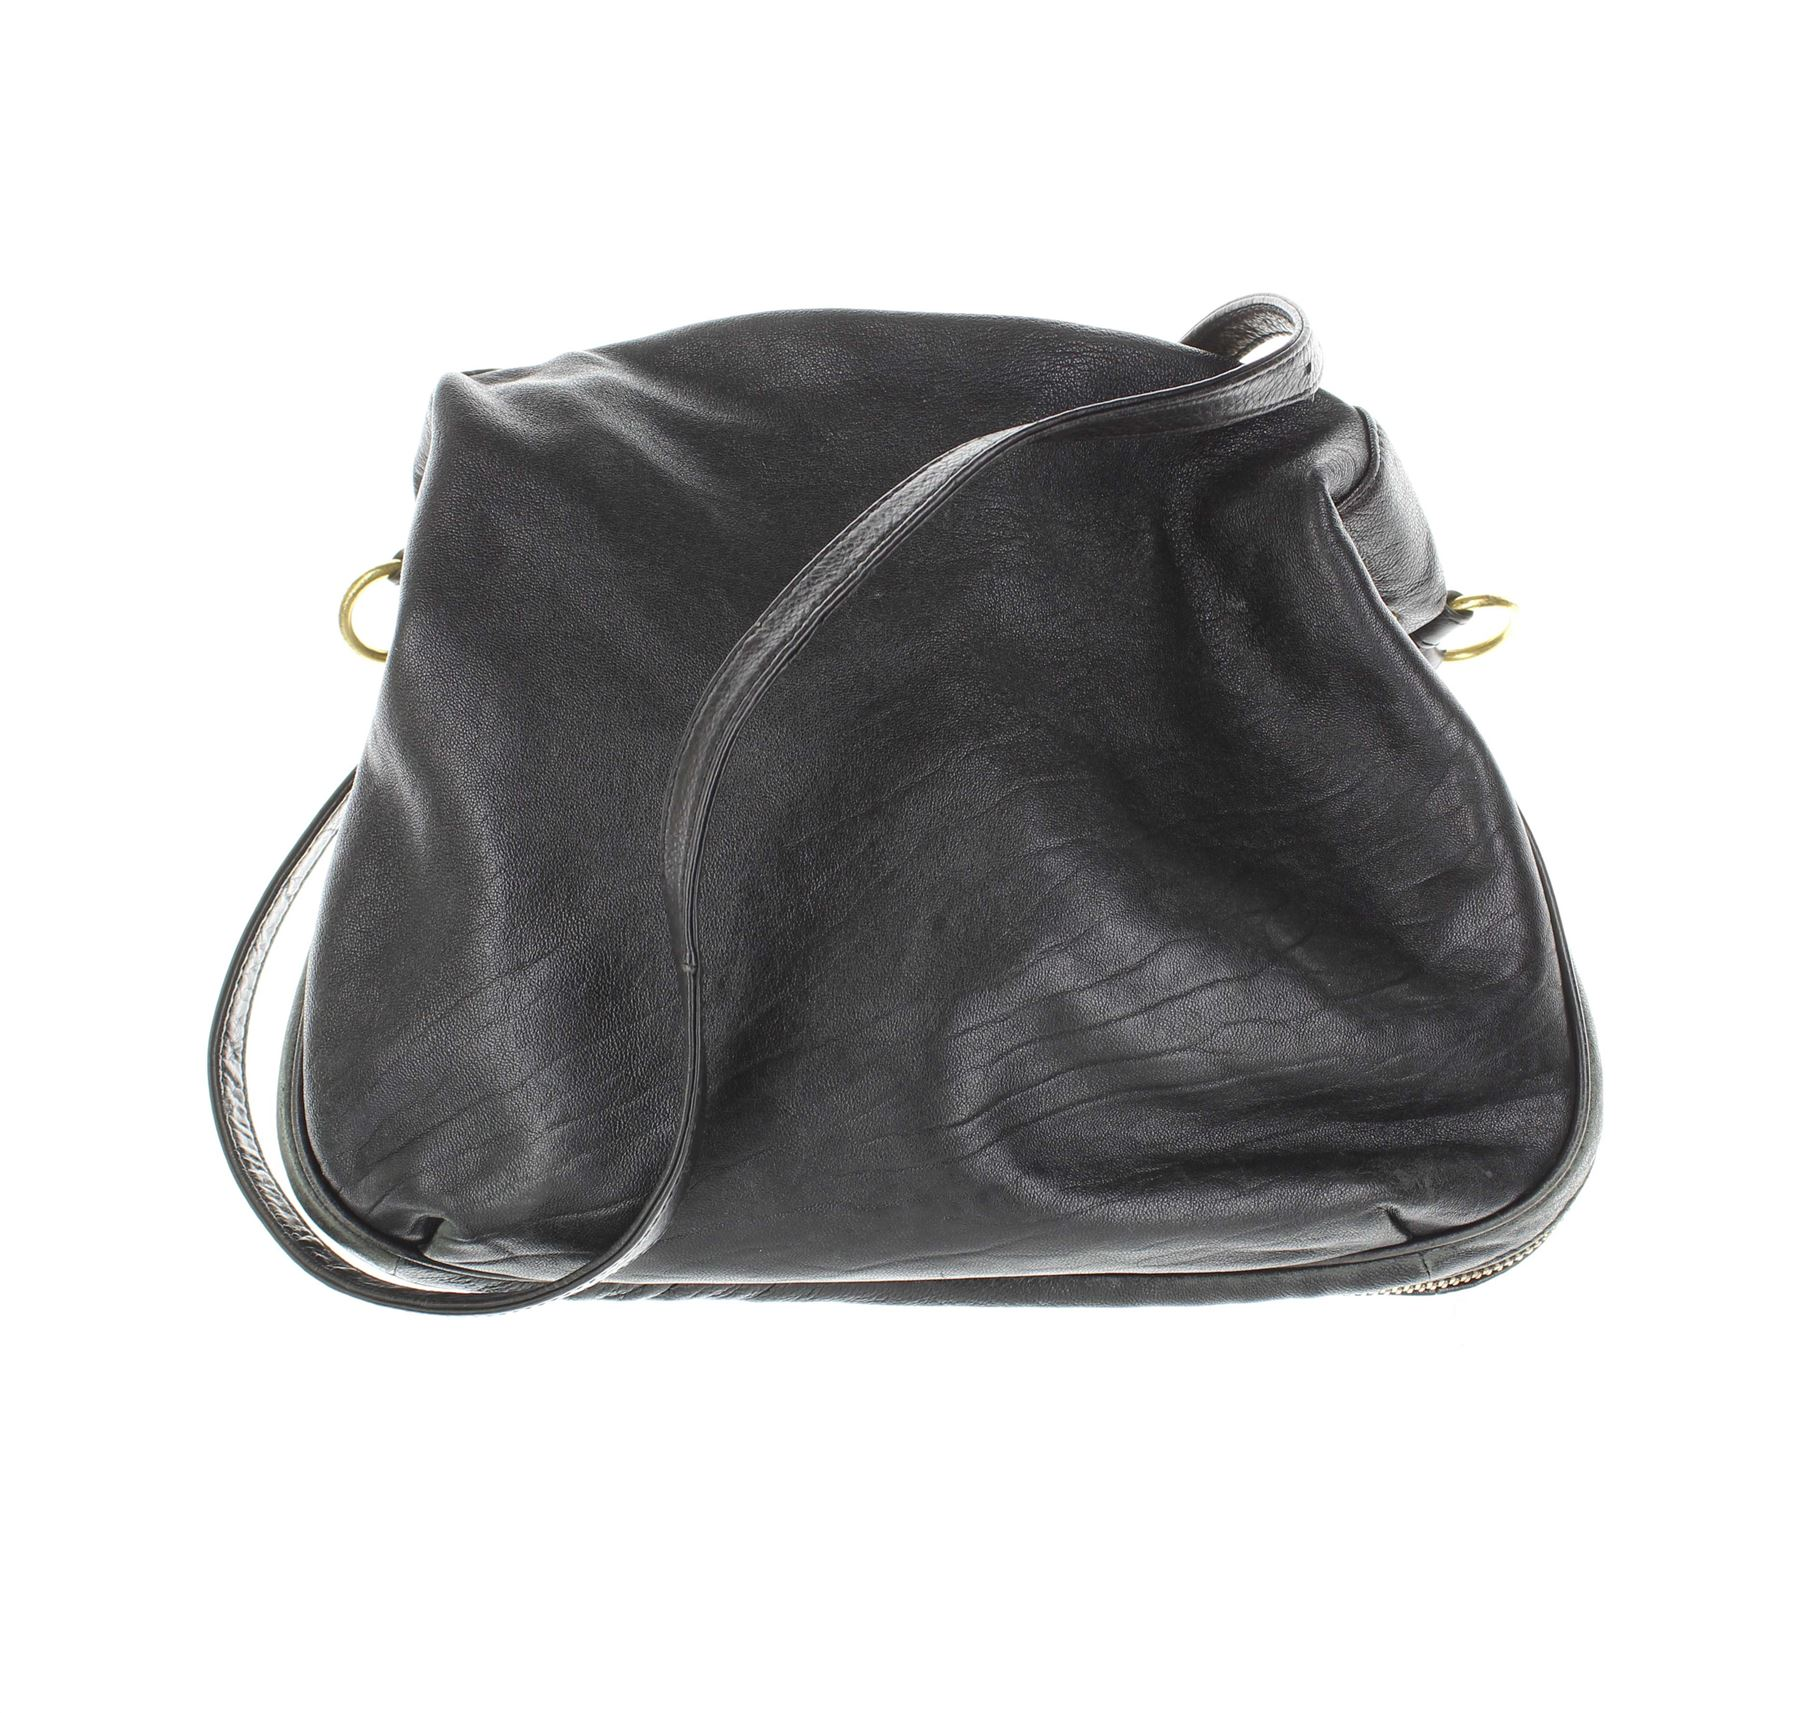 45b2d186ed MARC BY MARC JACOBS Borsa a tracolla in pelle nera, 13